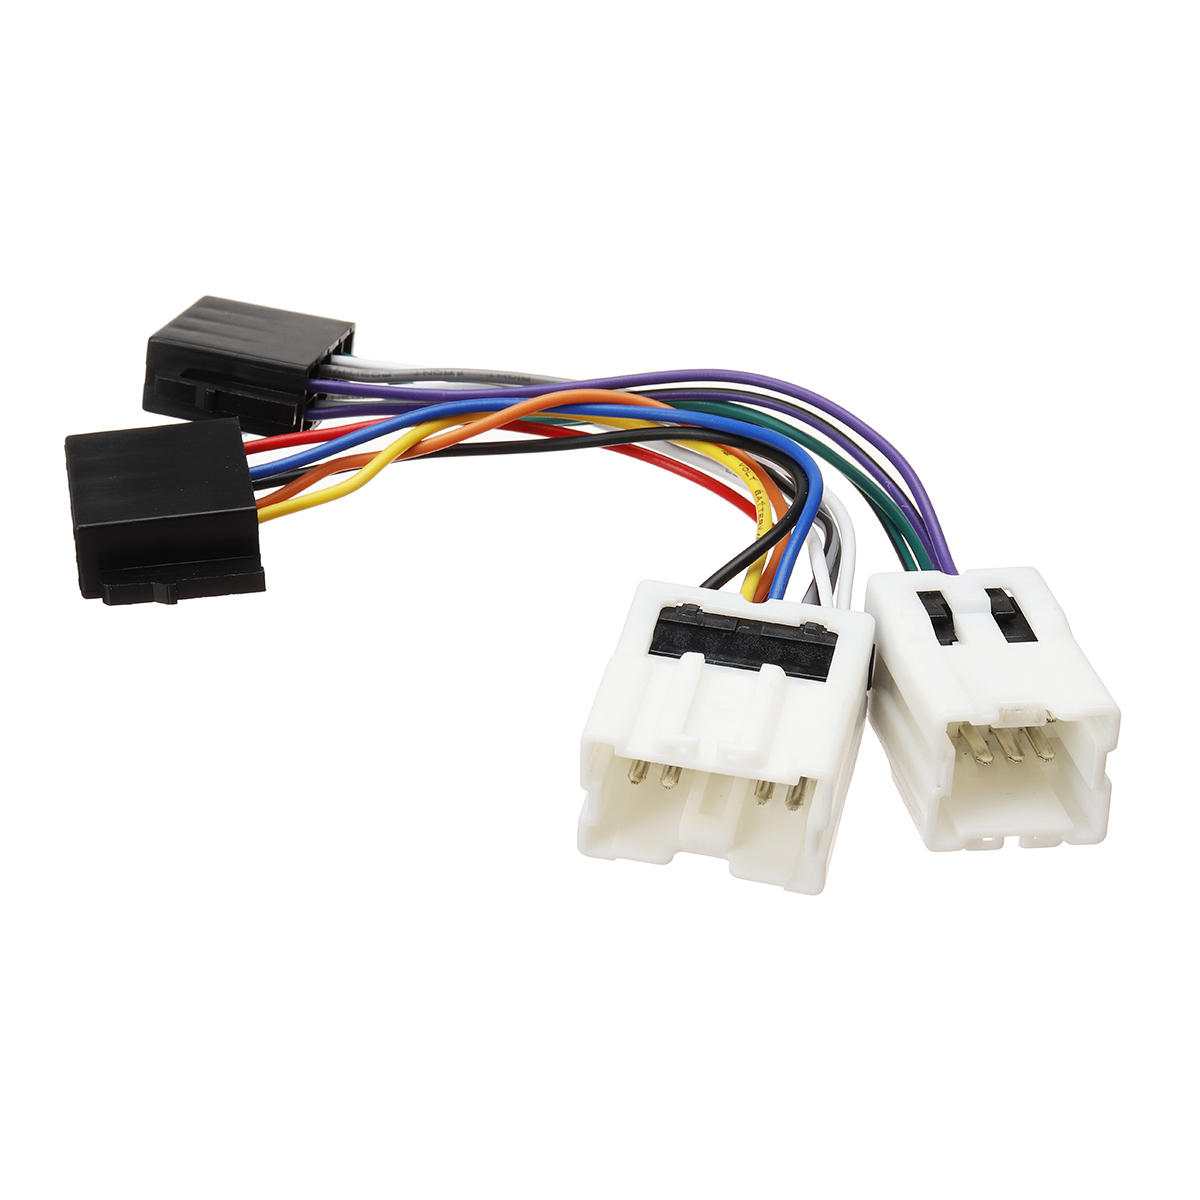 Car 4Pin 9Pin ISO Wiring Harness Stereo Radio Cable Adaptor Wire Loom Audio Connector For Nissan Patrol GQ GU GU7 Y61